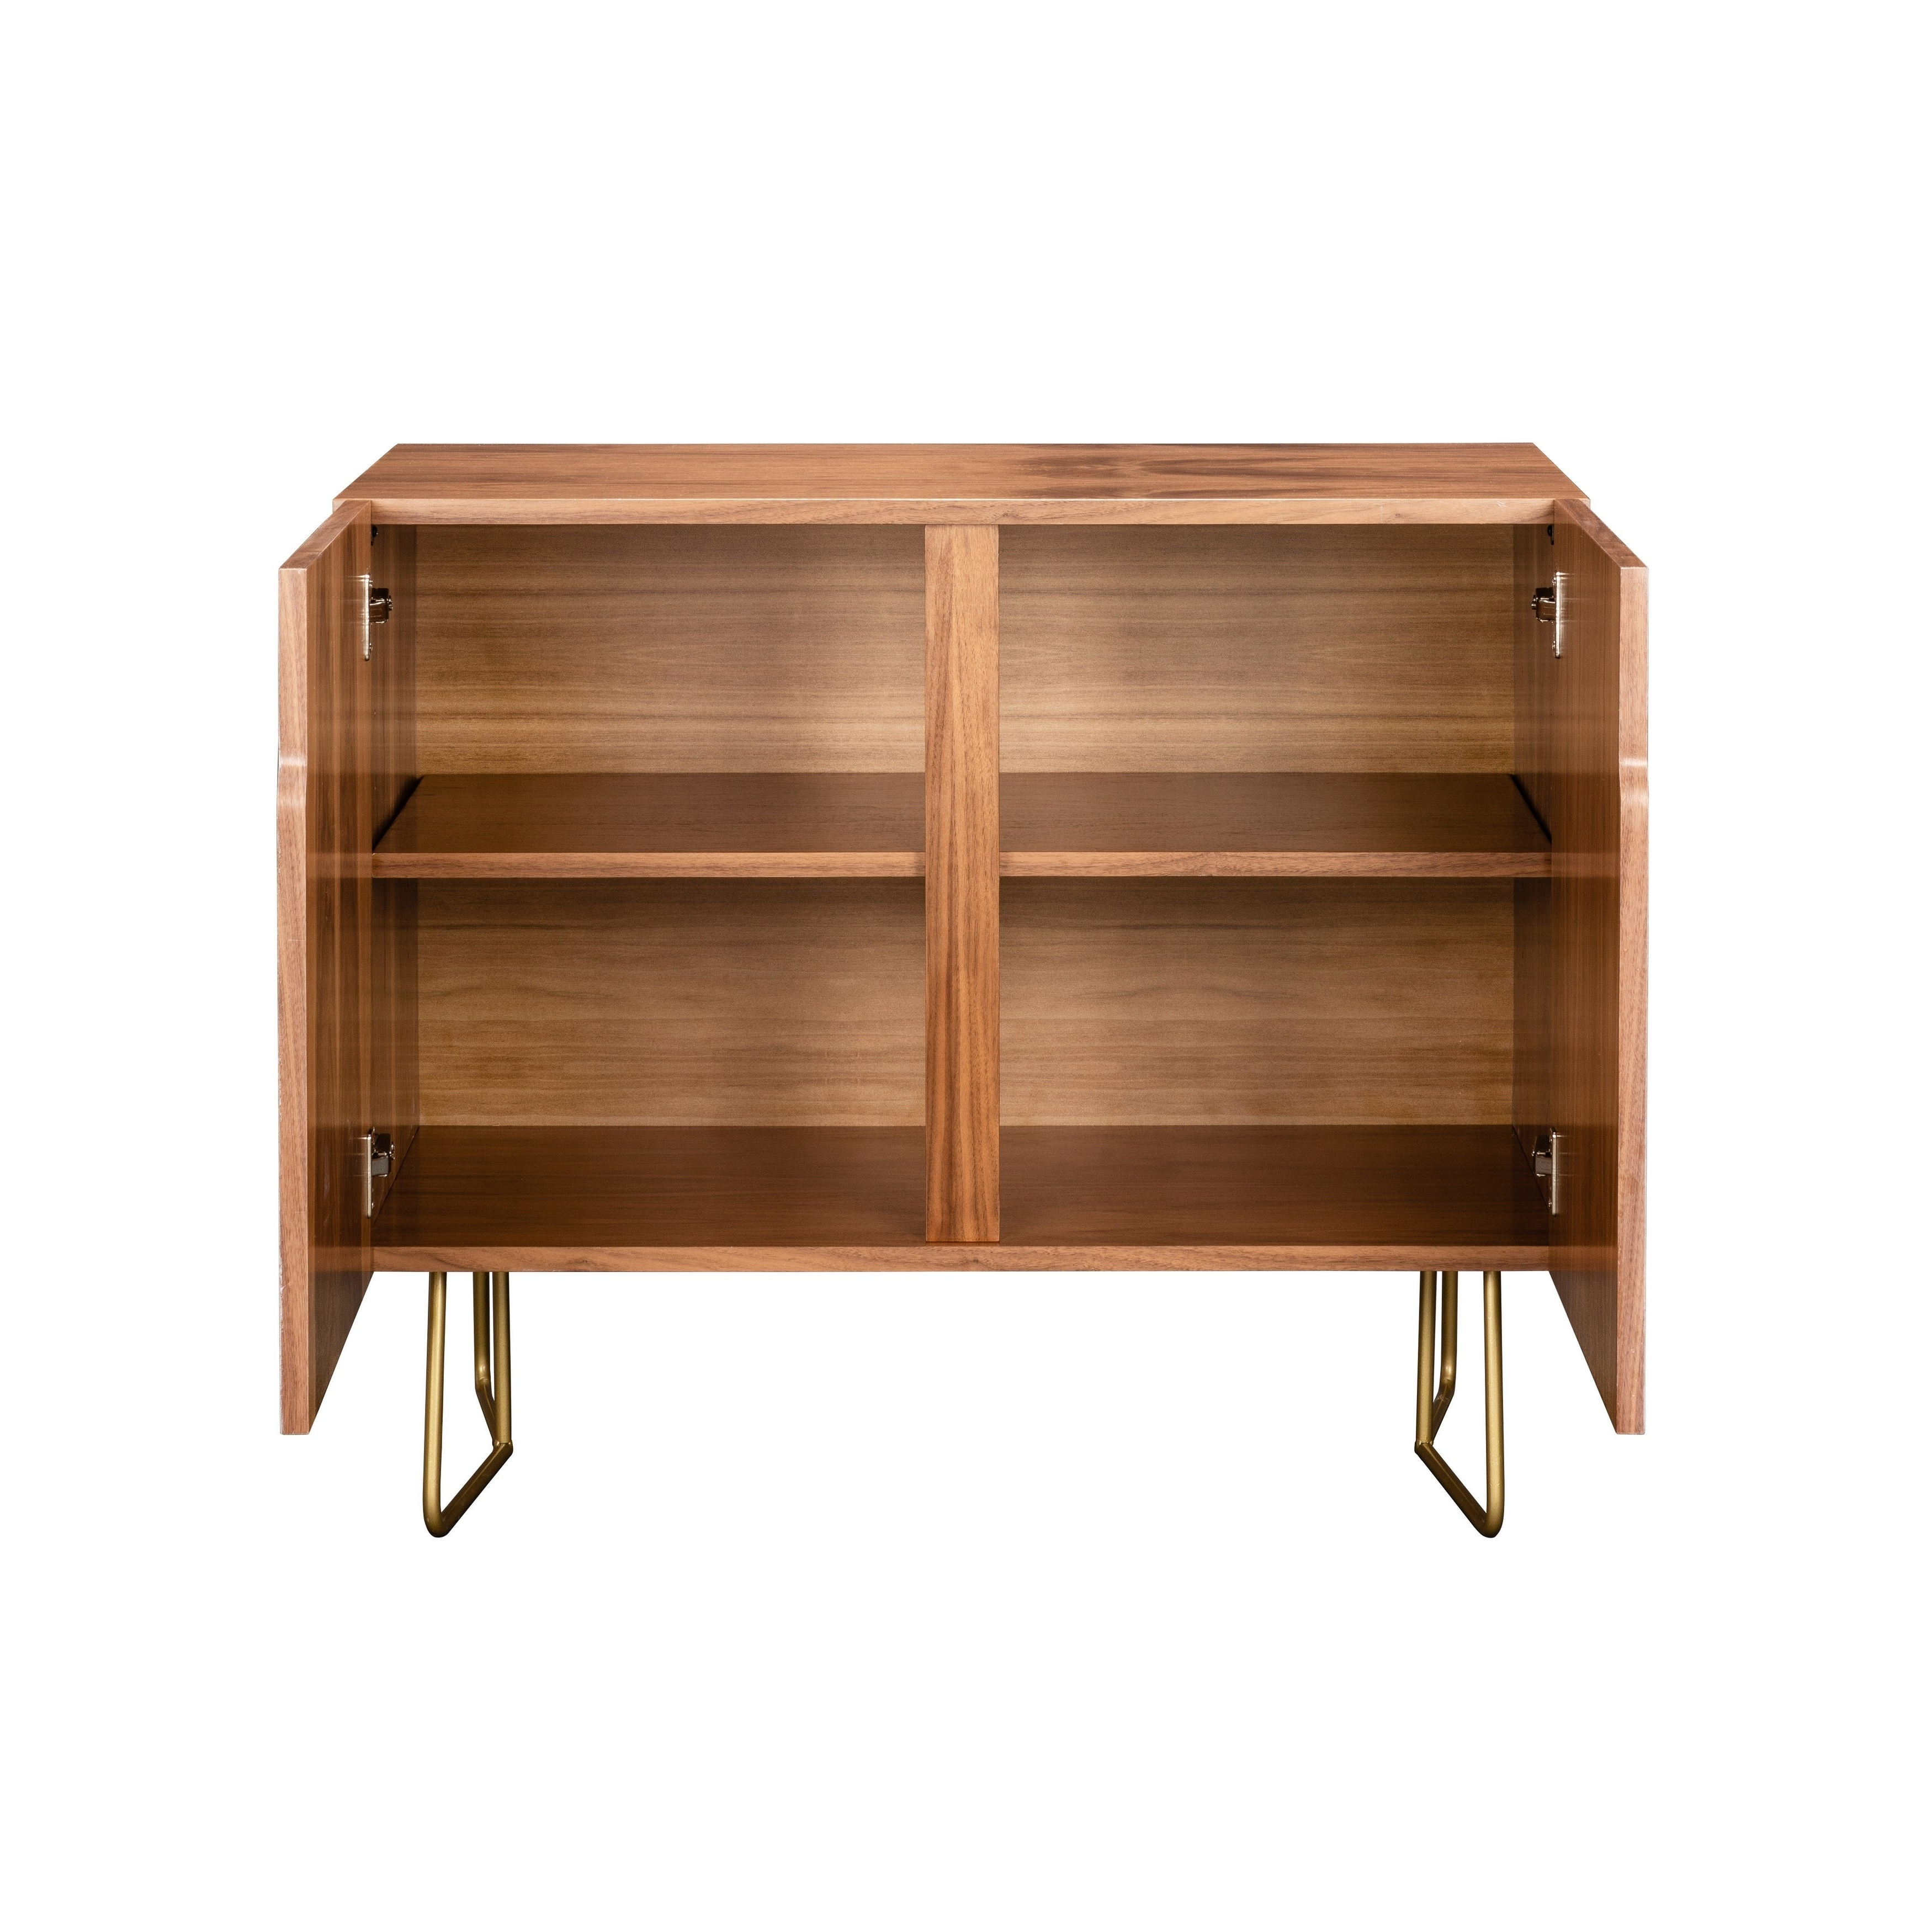 Deny Designs Festival Eclipse Credenza (Birch Or Walnut, 2 Leg Options) Pertaining To Festival Eclipse Credenzas (View 9 of 20)